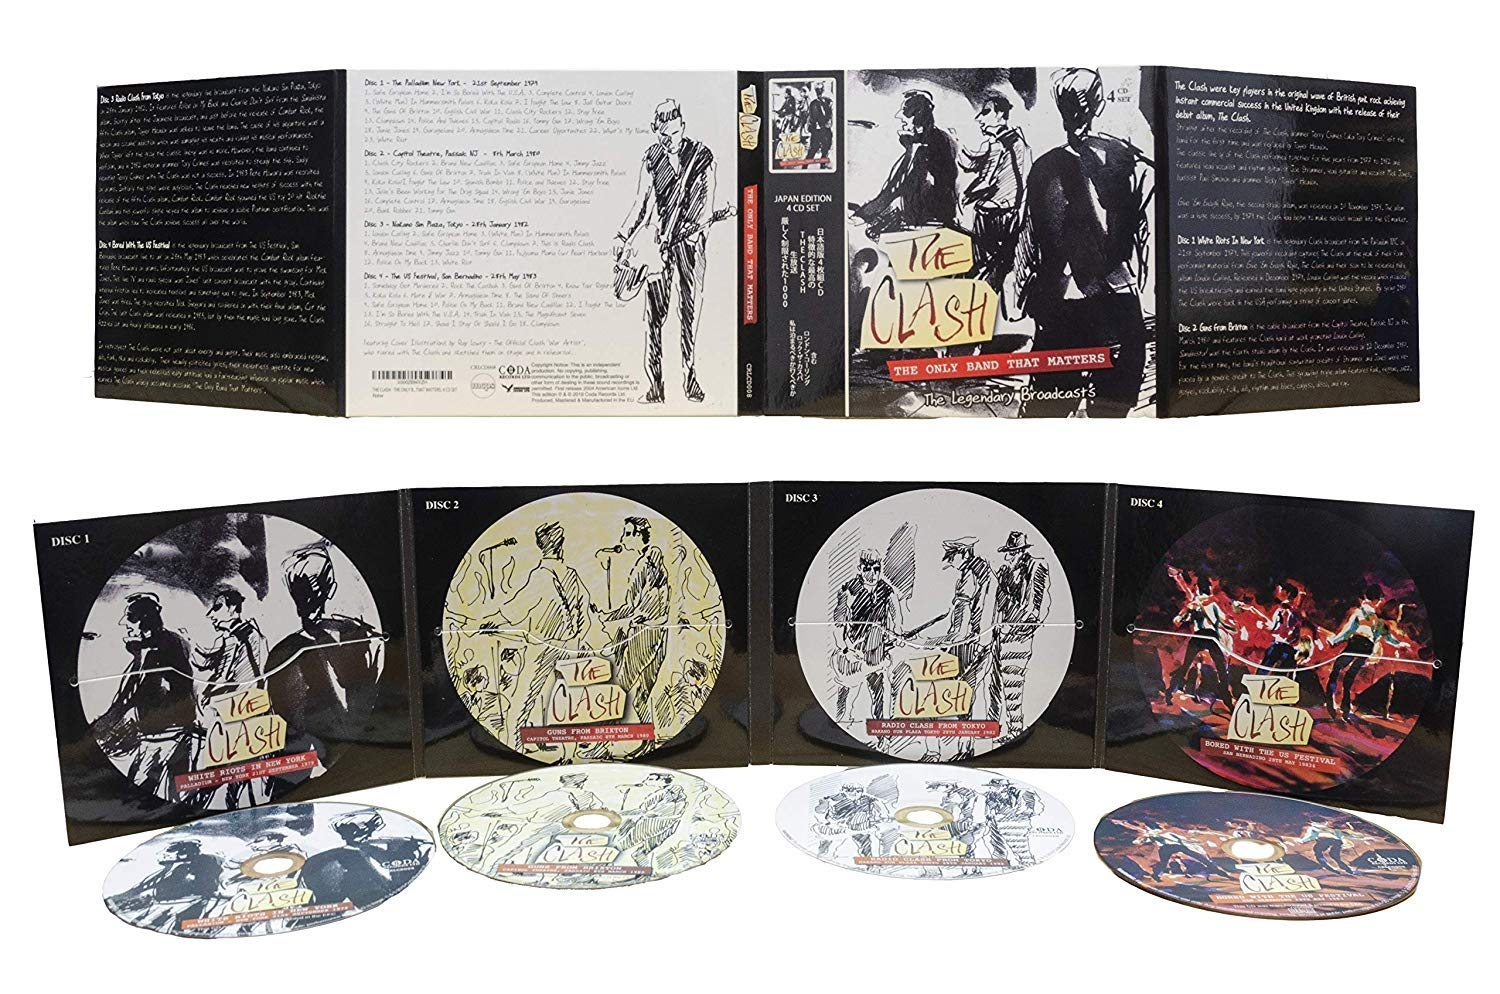 THE CLASH - THE ONLY BAND THAT MATTERS: 4 CD SET